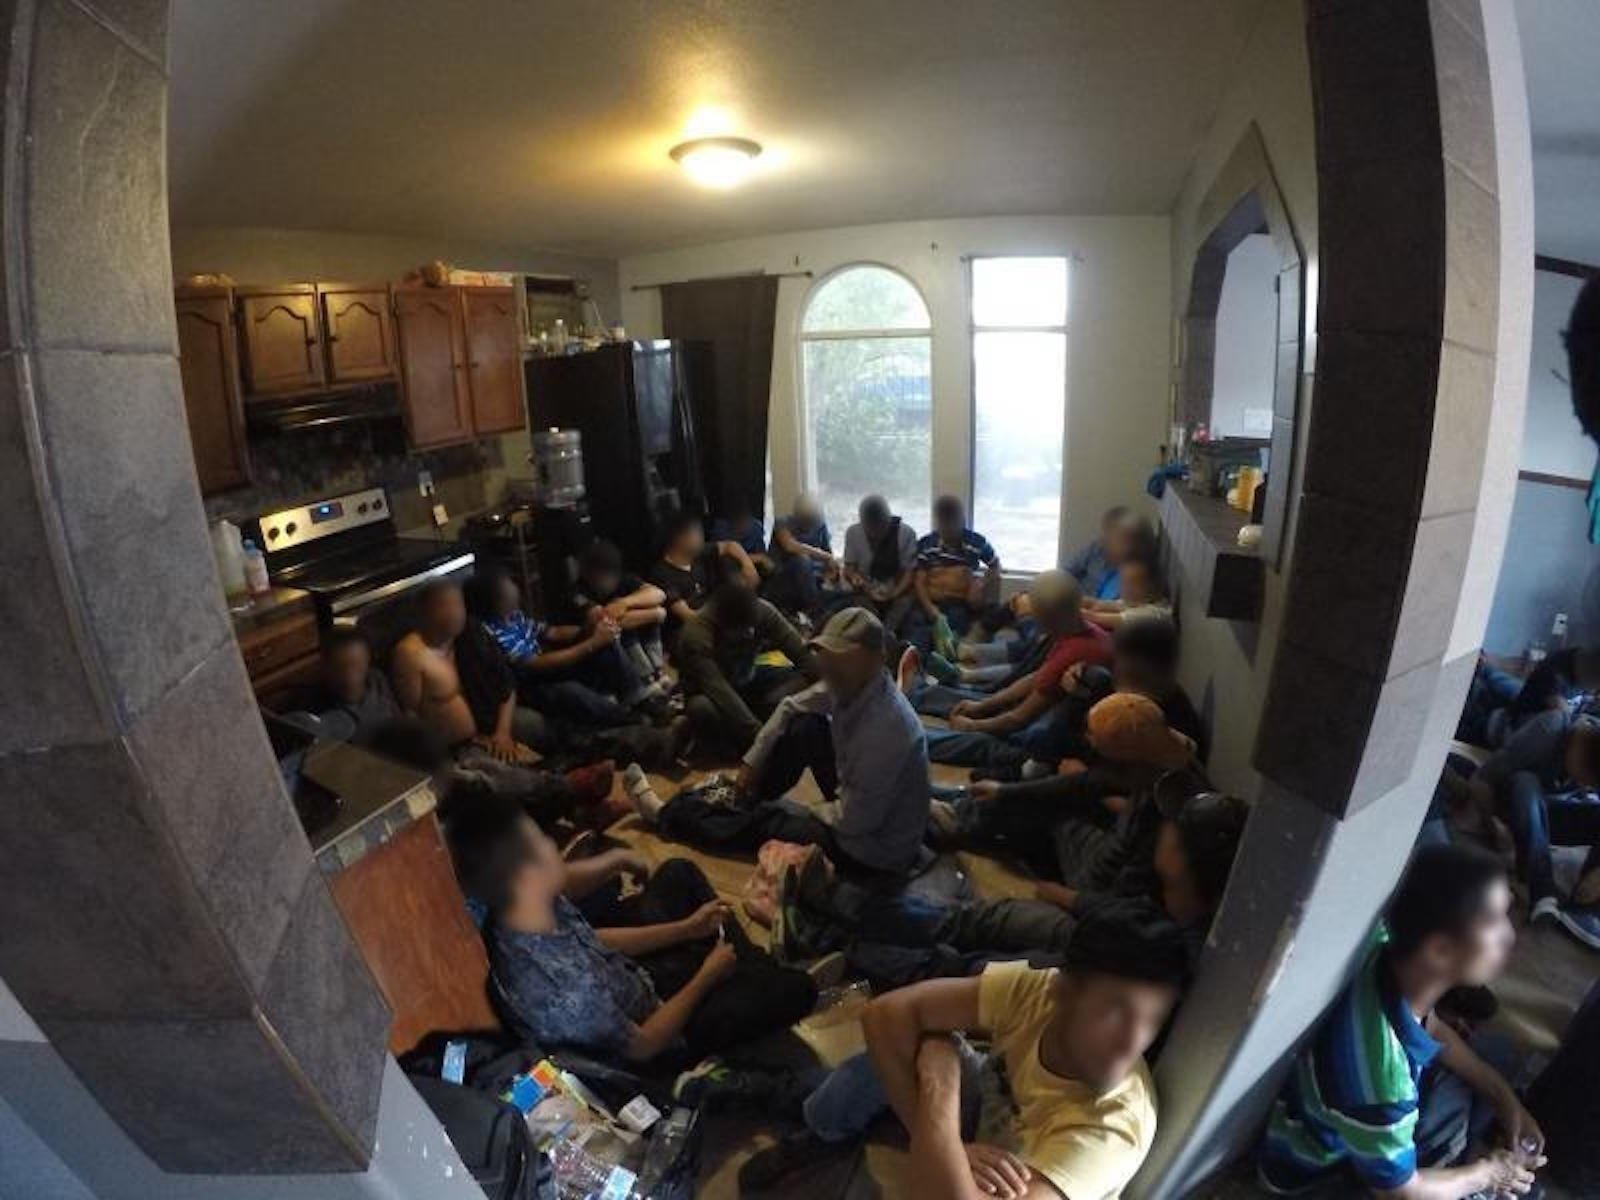 Border Patrol agents, acting on a tip, arrested 62 undocumented immigrants found in a two-bedroom house in Laredo on Tuesday.